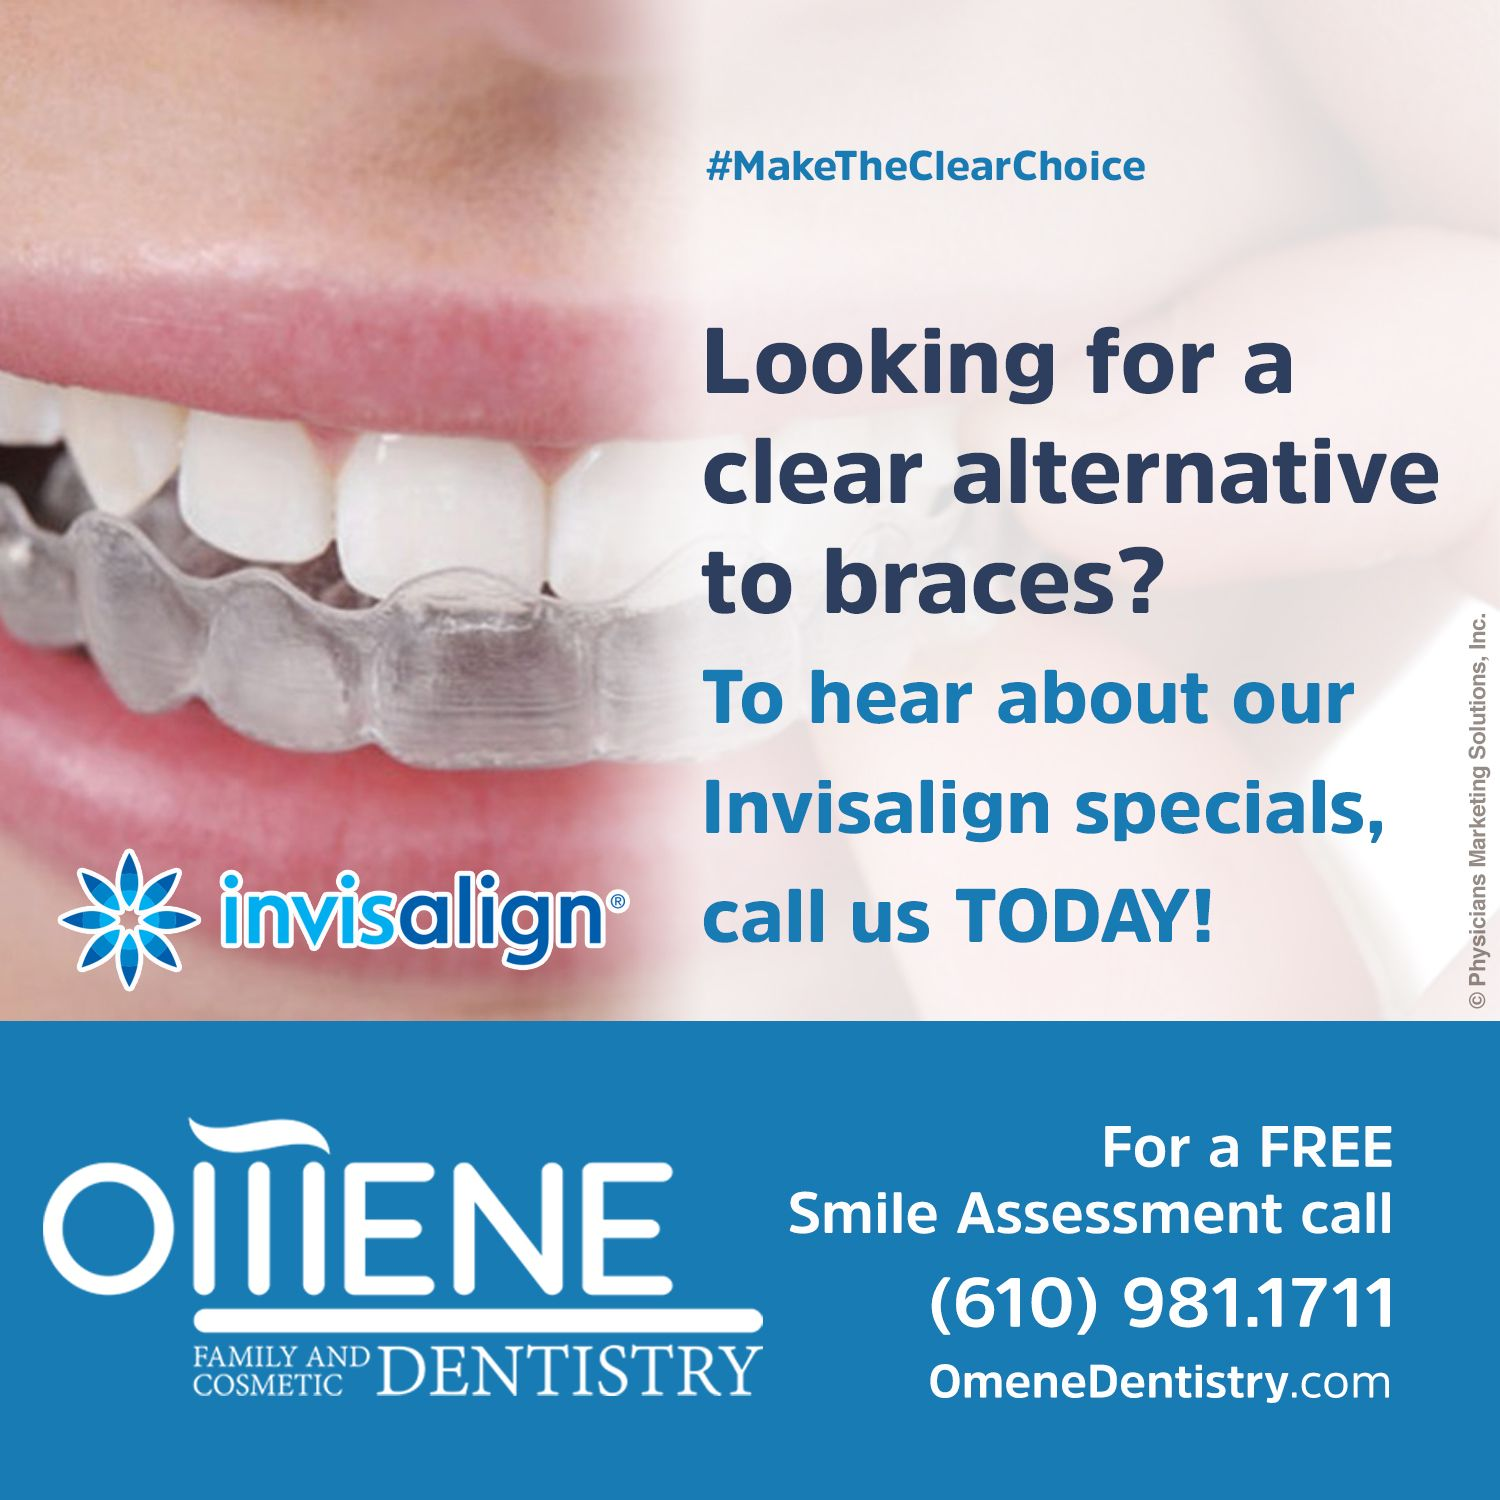 Looking for a clear alternative to #‎braces? To hear about our #‎Invisalign specials, call us at (610) 981.1711 / www.omenedentistry.com #drguliaomene #omenedentistry #pensilvania #dentalpractice #confidence #cosmeticdentistry #dentaljob #tmj #dentistryservices #implantdentistry #invisalign #dentalcare #dentalfiller #preventivedentalcare #dentist #porcelain #crowns #veneers #dentalimplant #dentalbridge #clearbraces #teeth #whitening #restorative #preventative #dentistry #paoli